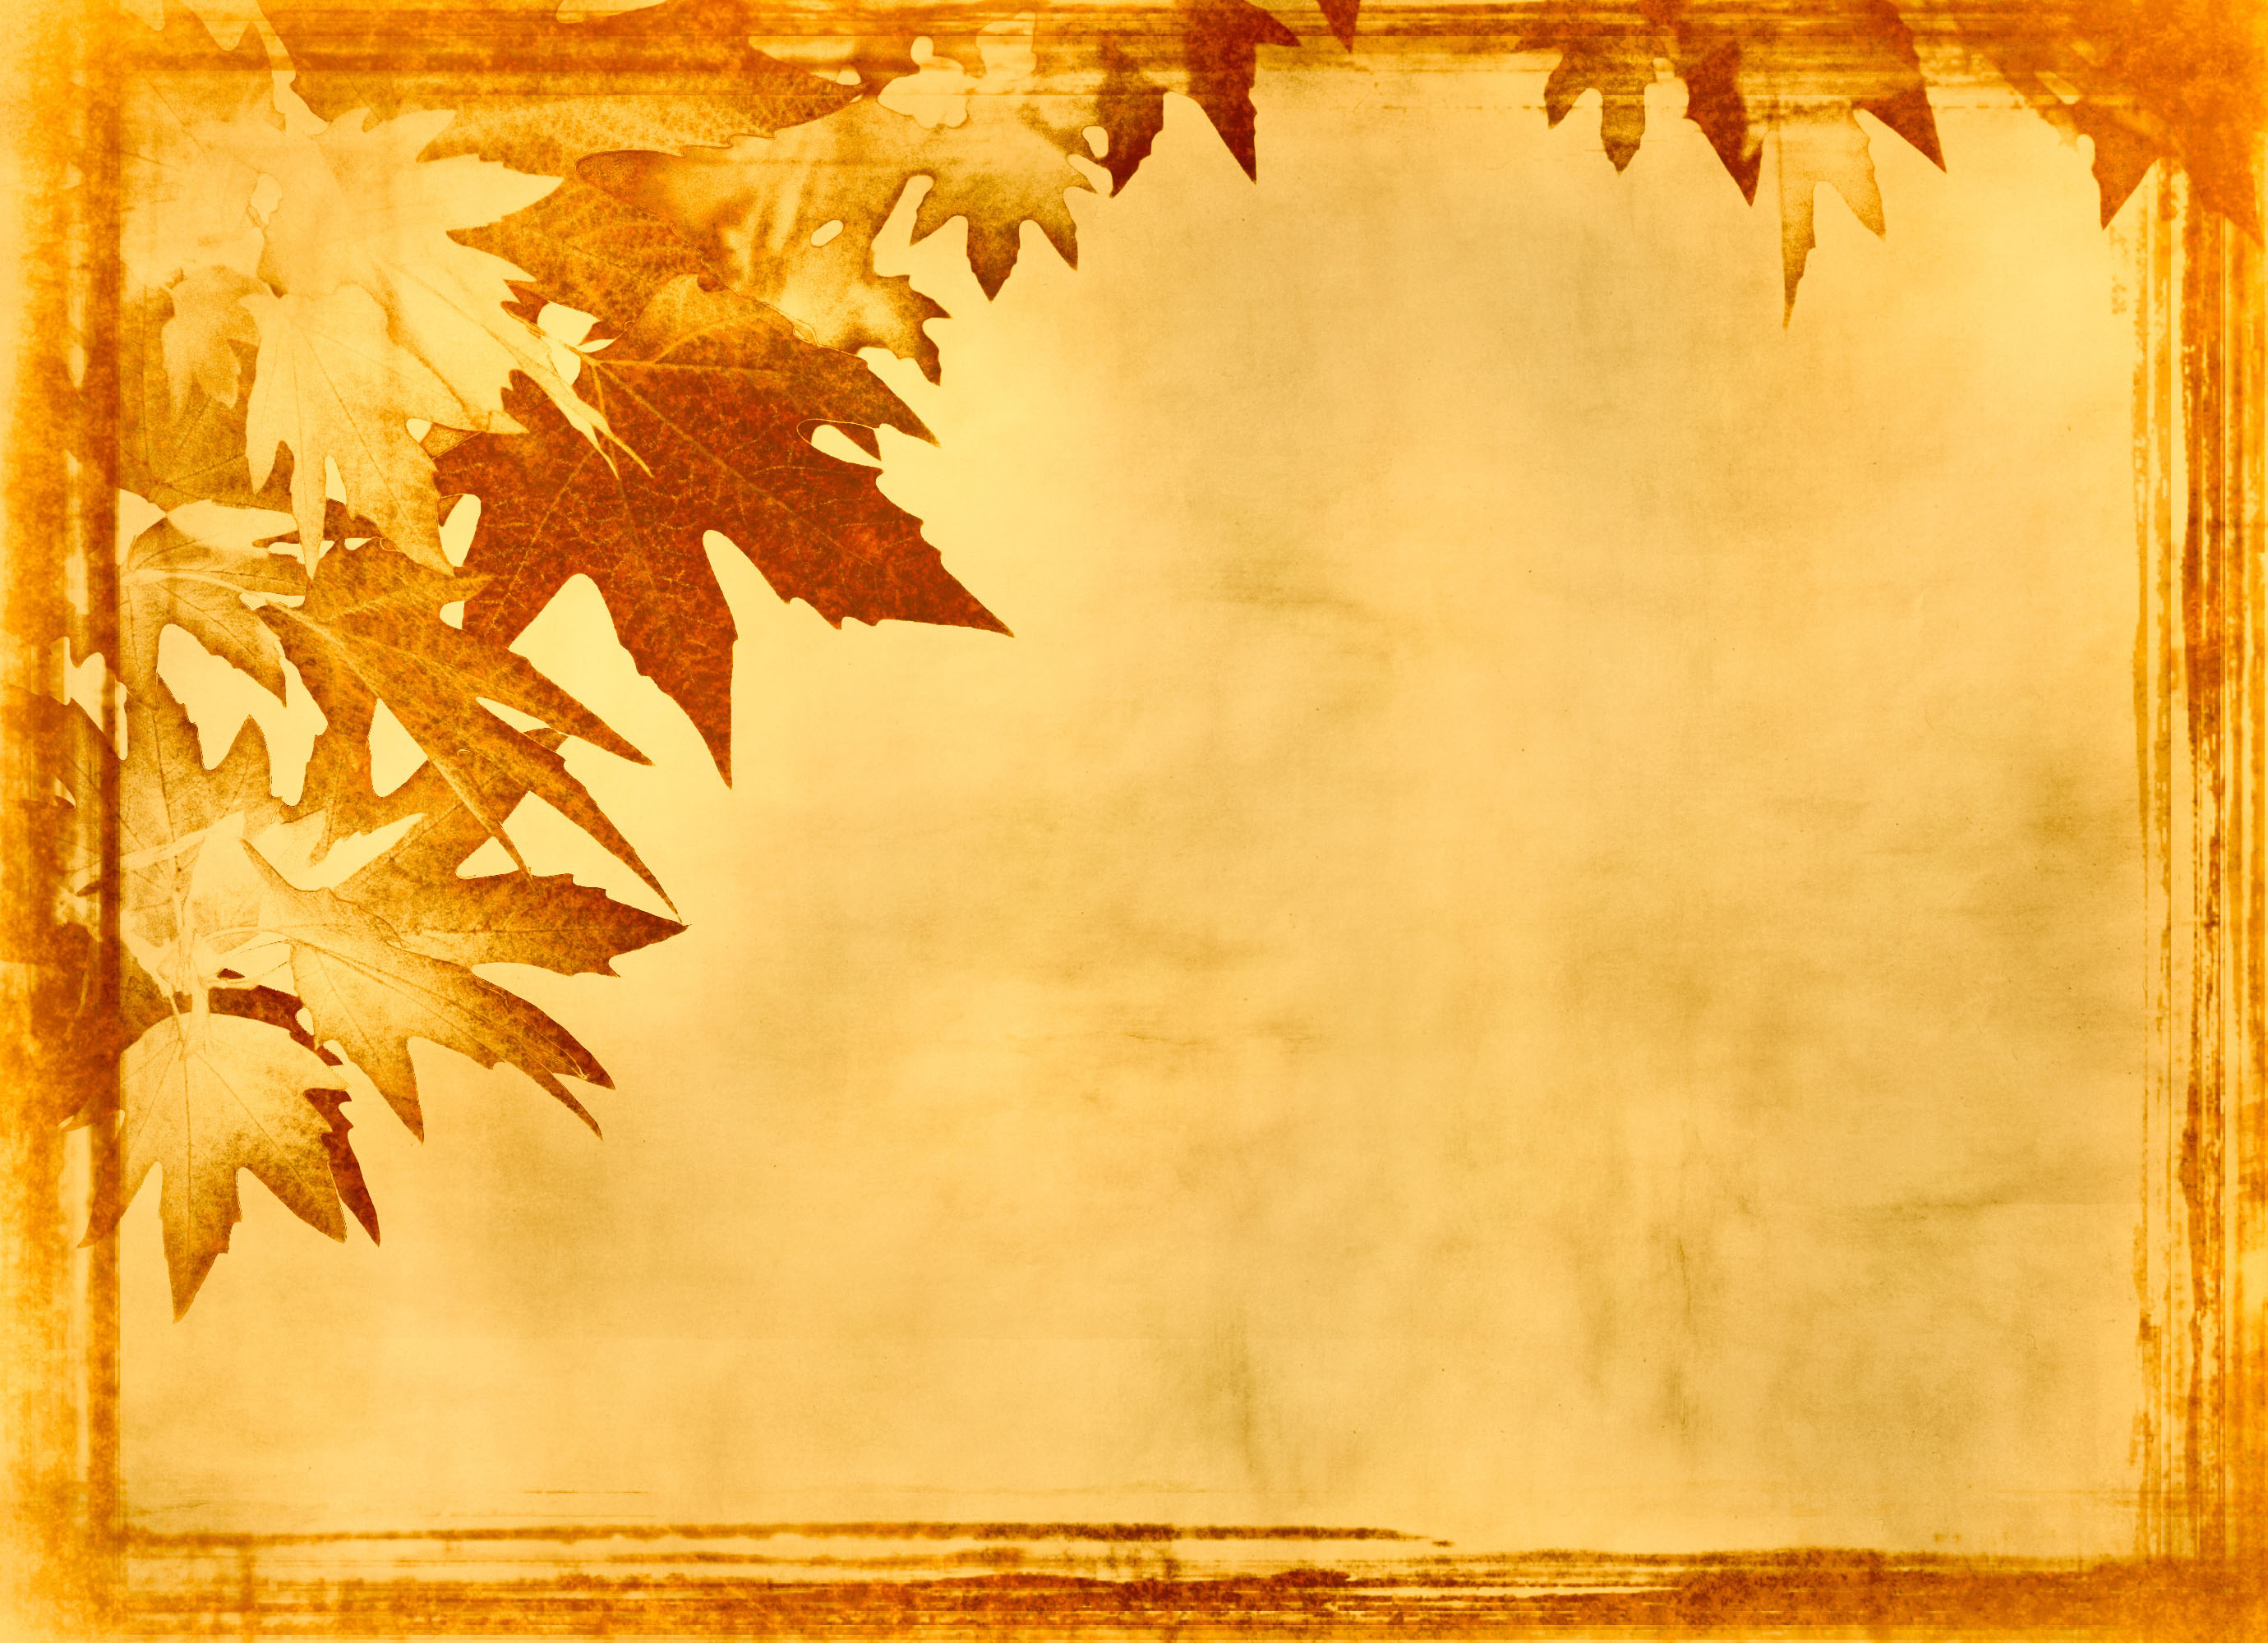 Wallpaper For Thanksgiving And Fall Фон природа для фотошопа